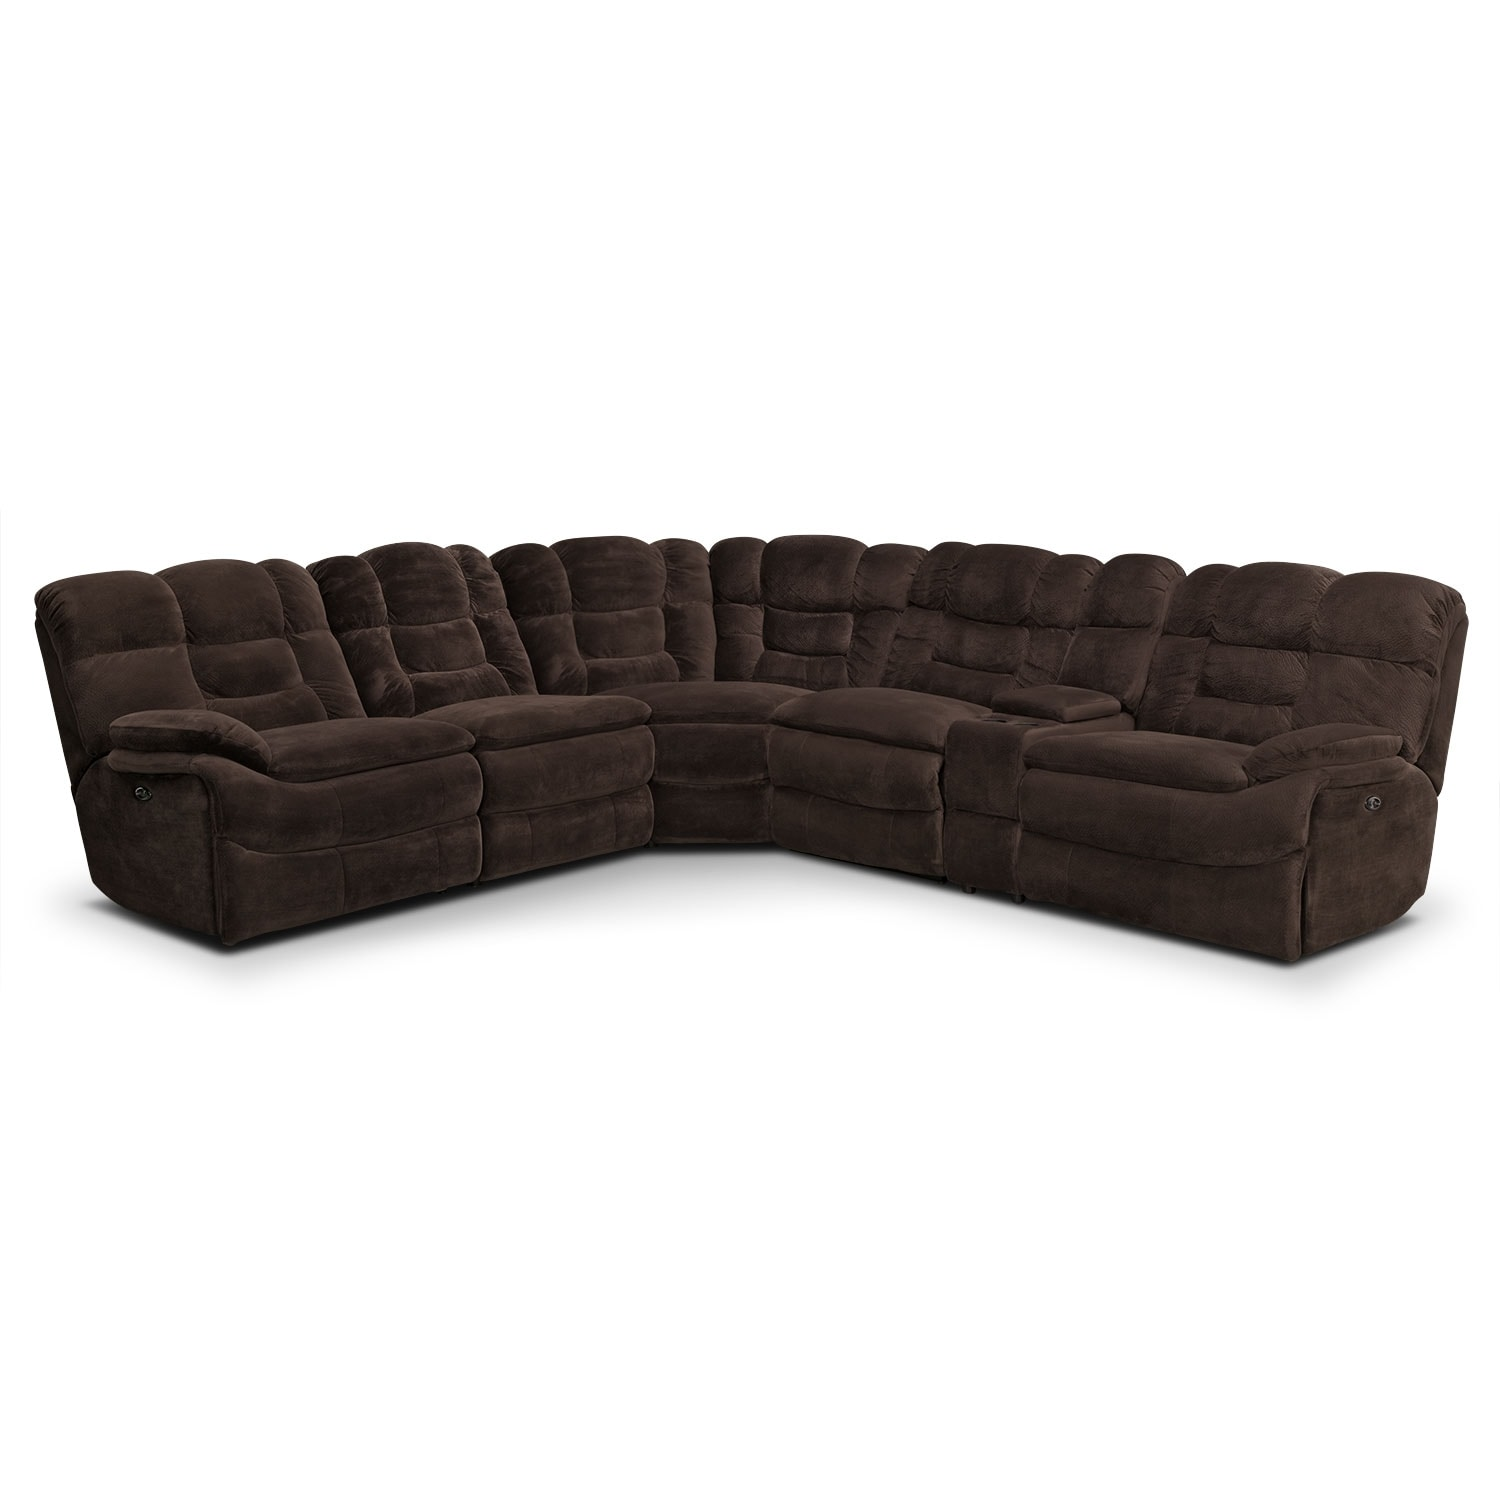 Living Room Furniture - Big Softie 6-Piece Power Reclining Sectional - Chocolate